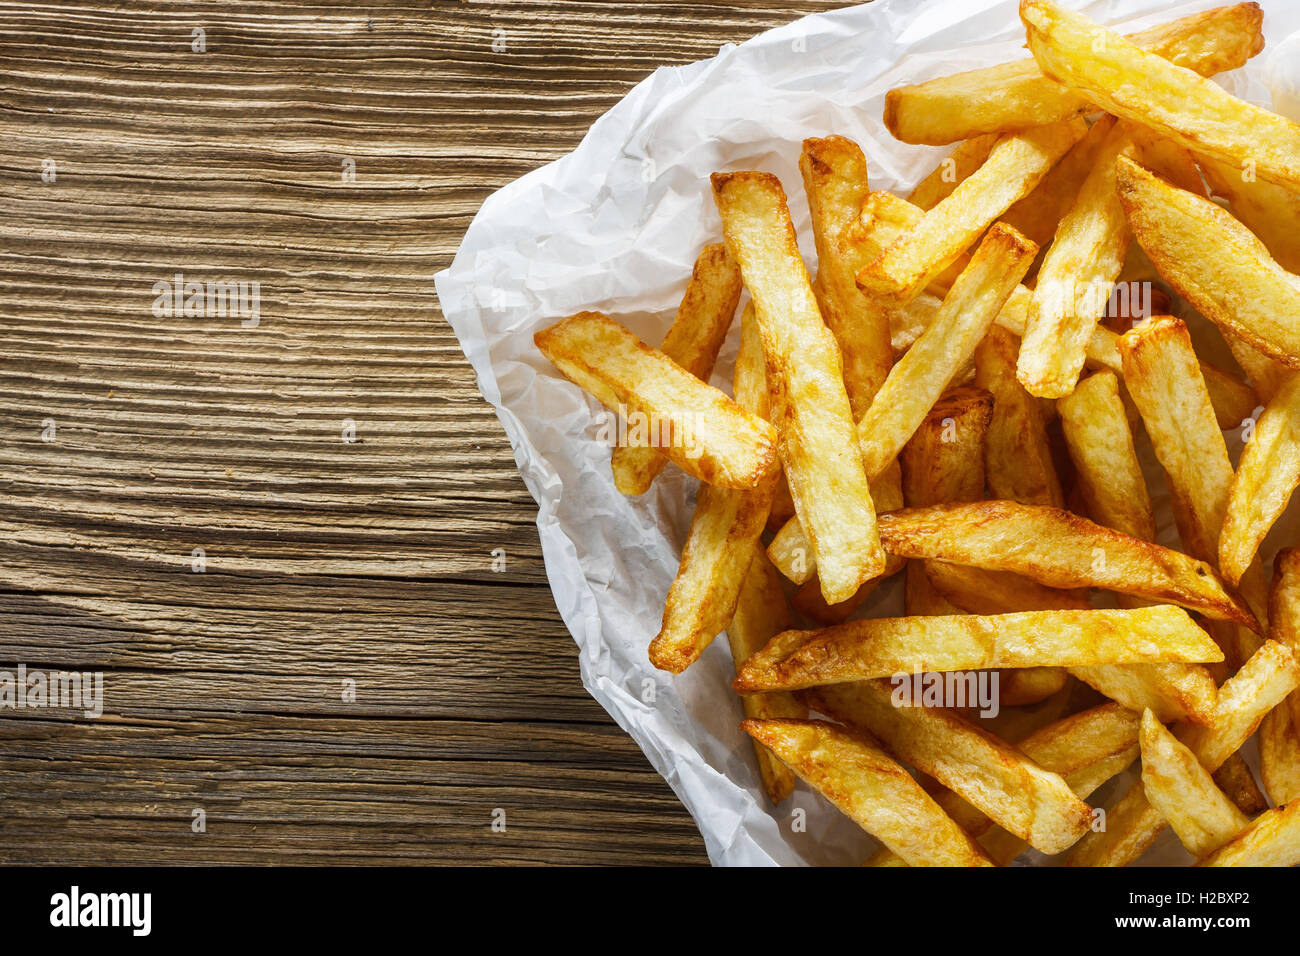 French fries on wooden table - Stock Image